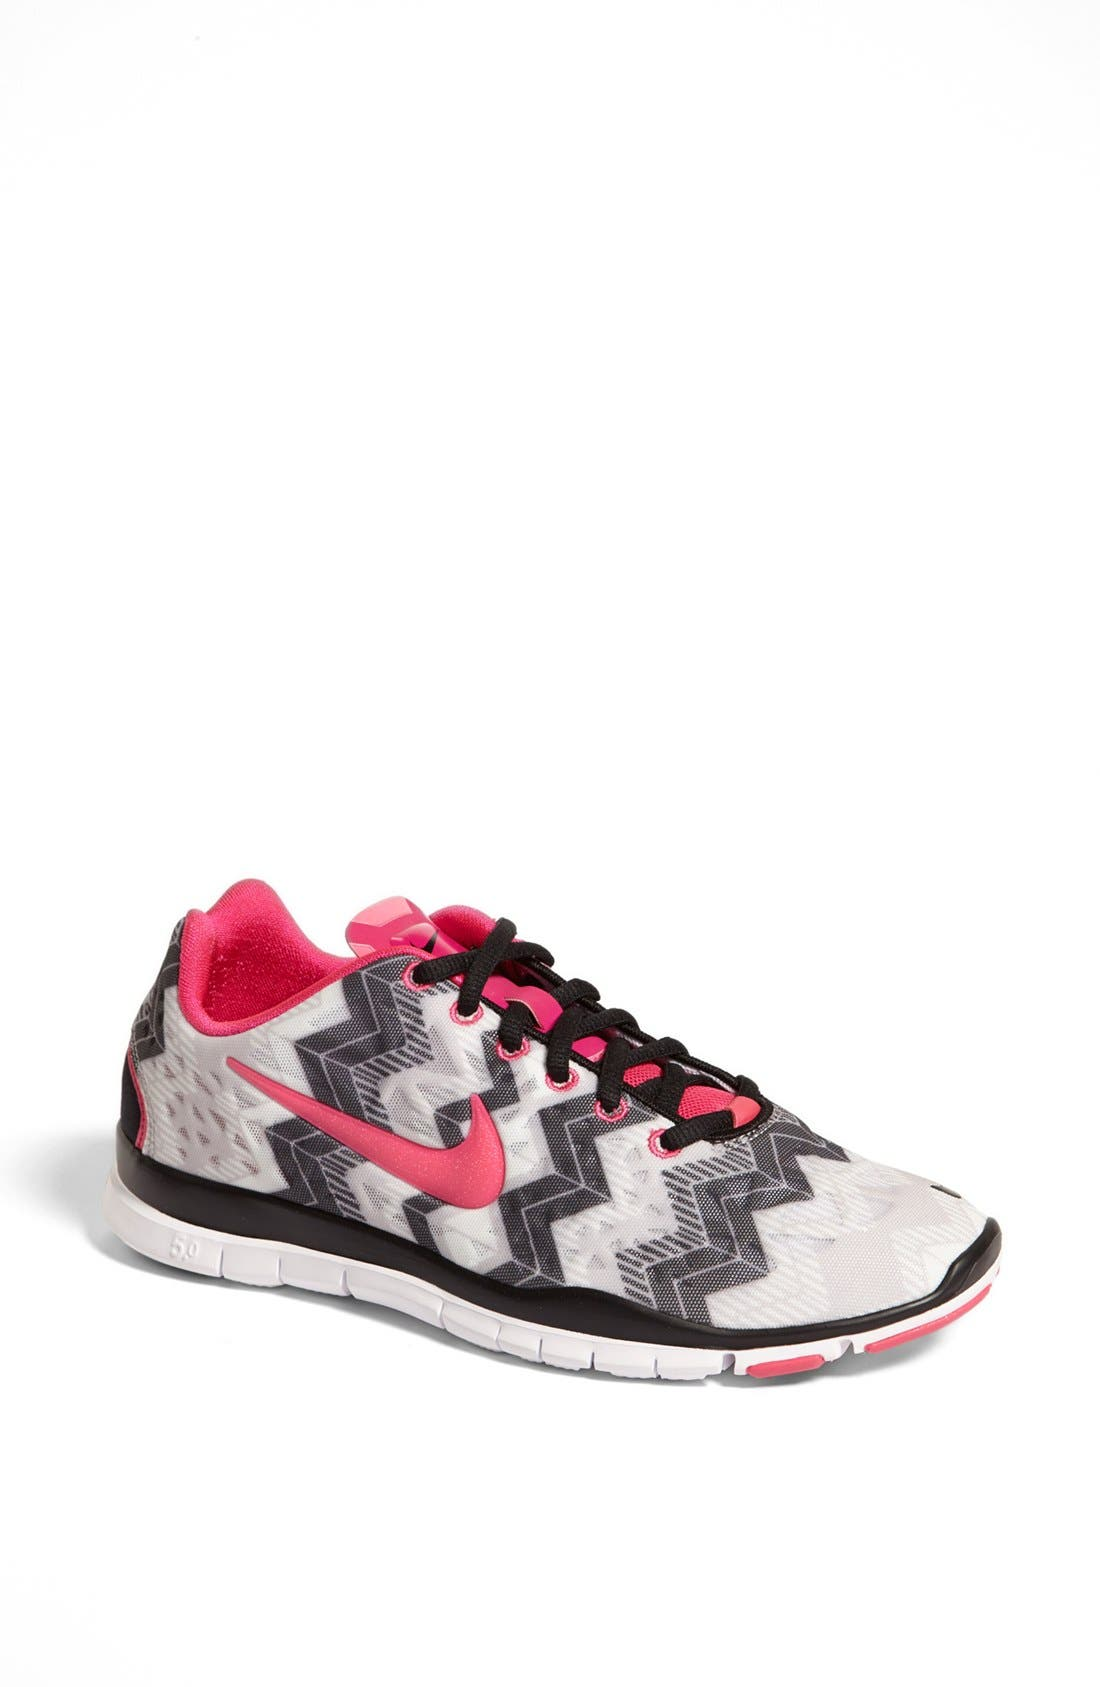 'Free TR Fit 3 Print' Training Shoe,                         Main,                         color, Grey/ Black/ Pink Foil